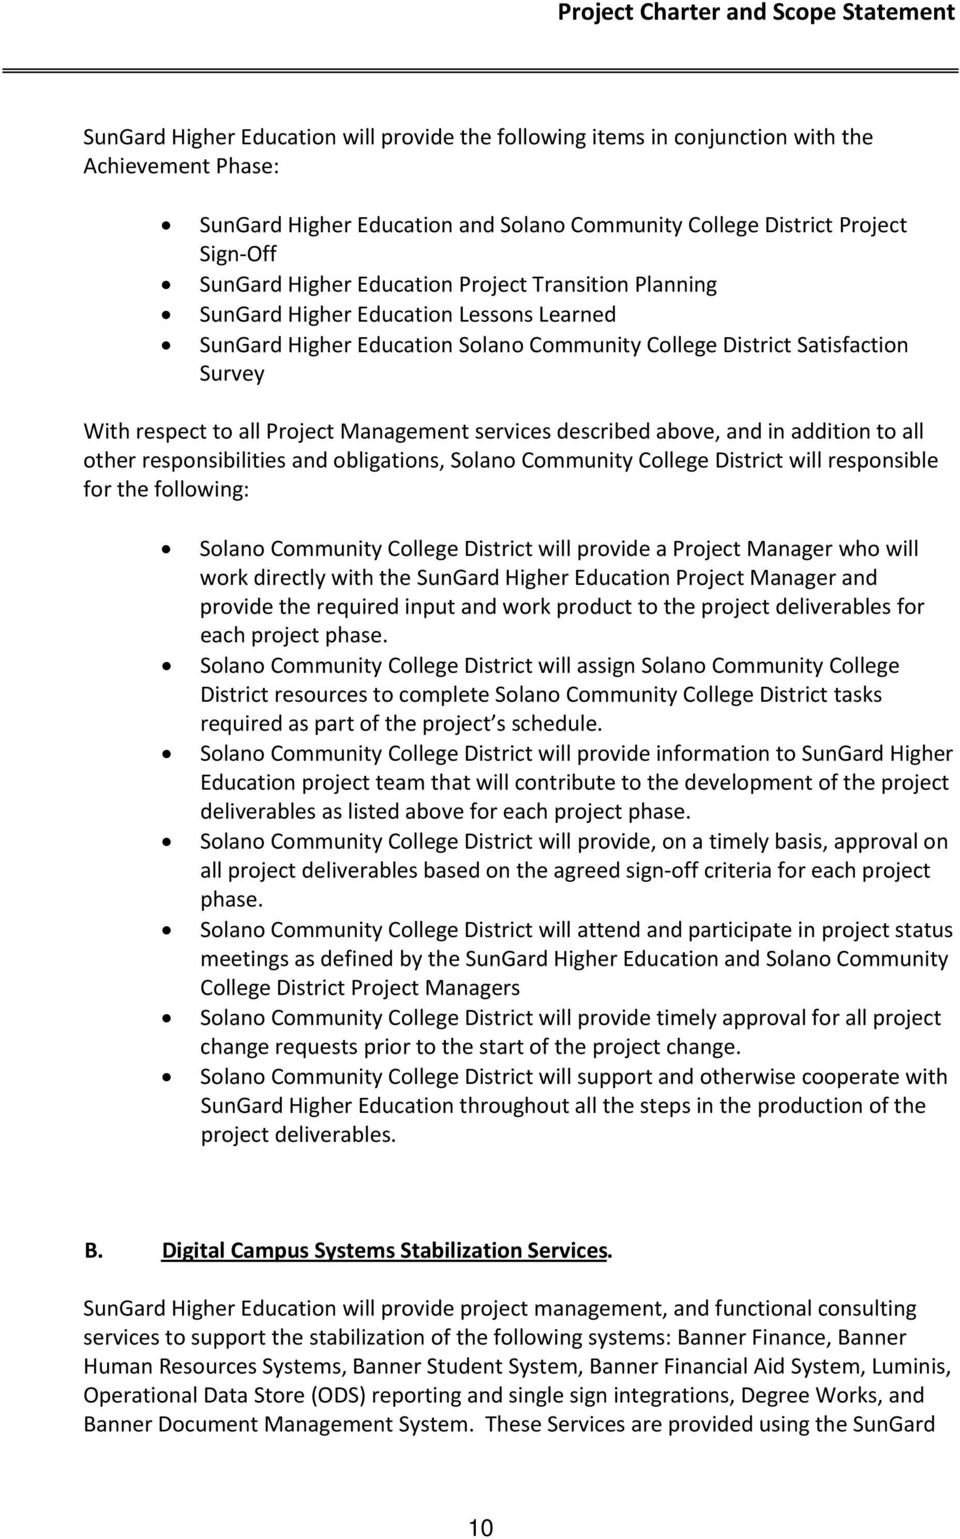 services described above, and in addition to all other responsibilities and obligations, Solano Community College District will responsible for the following: Solano Community College District will